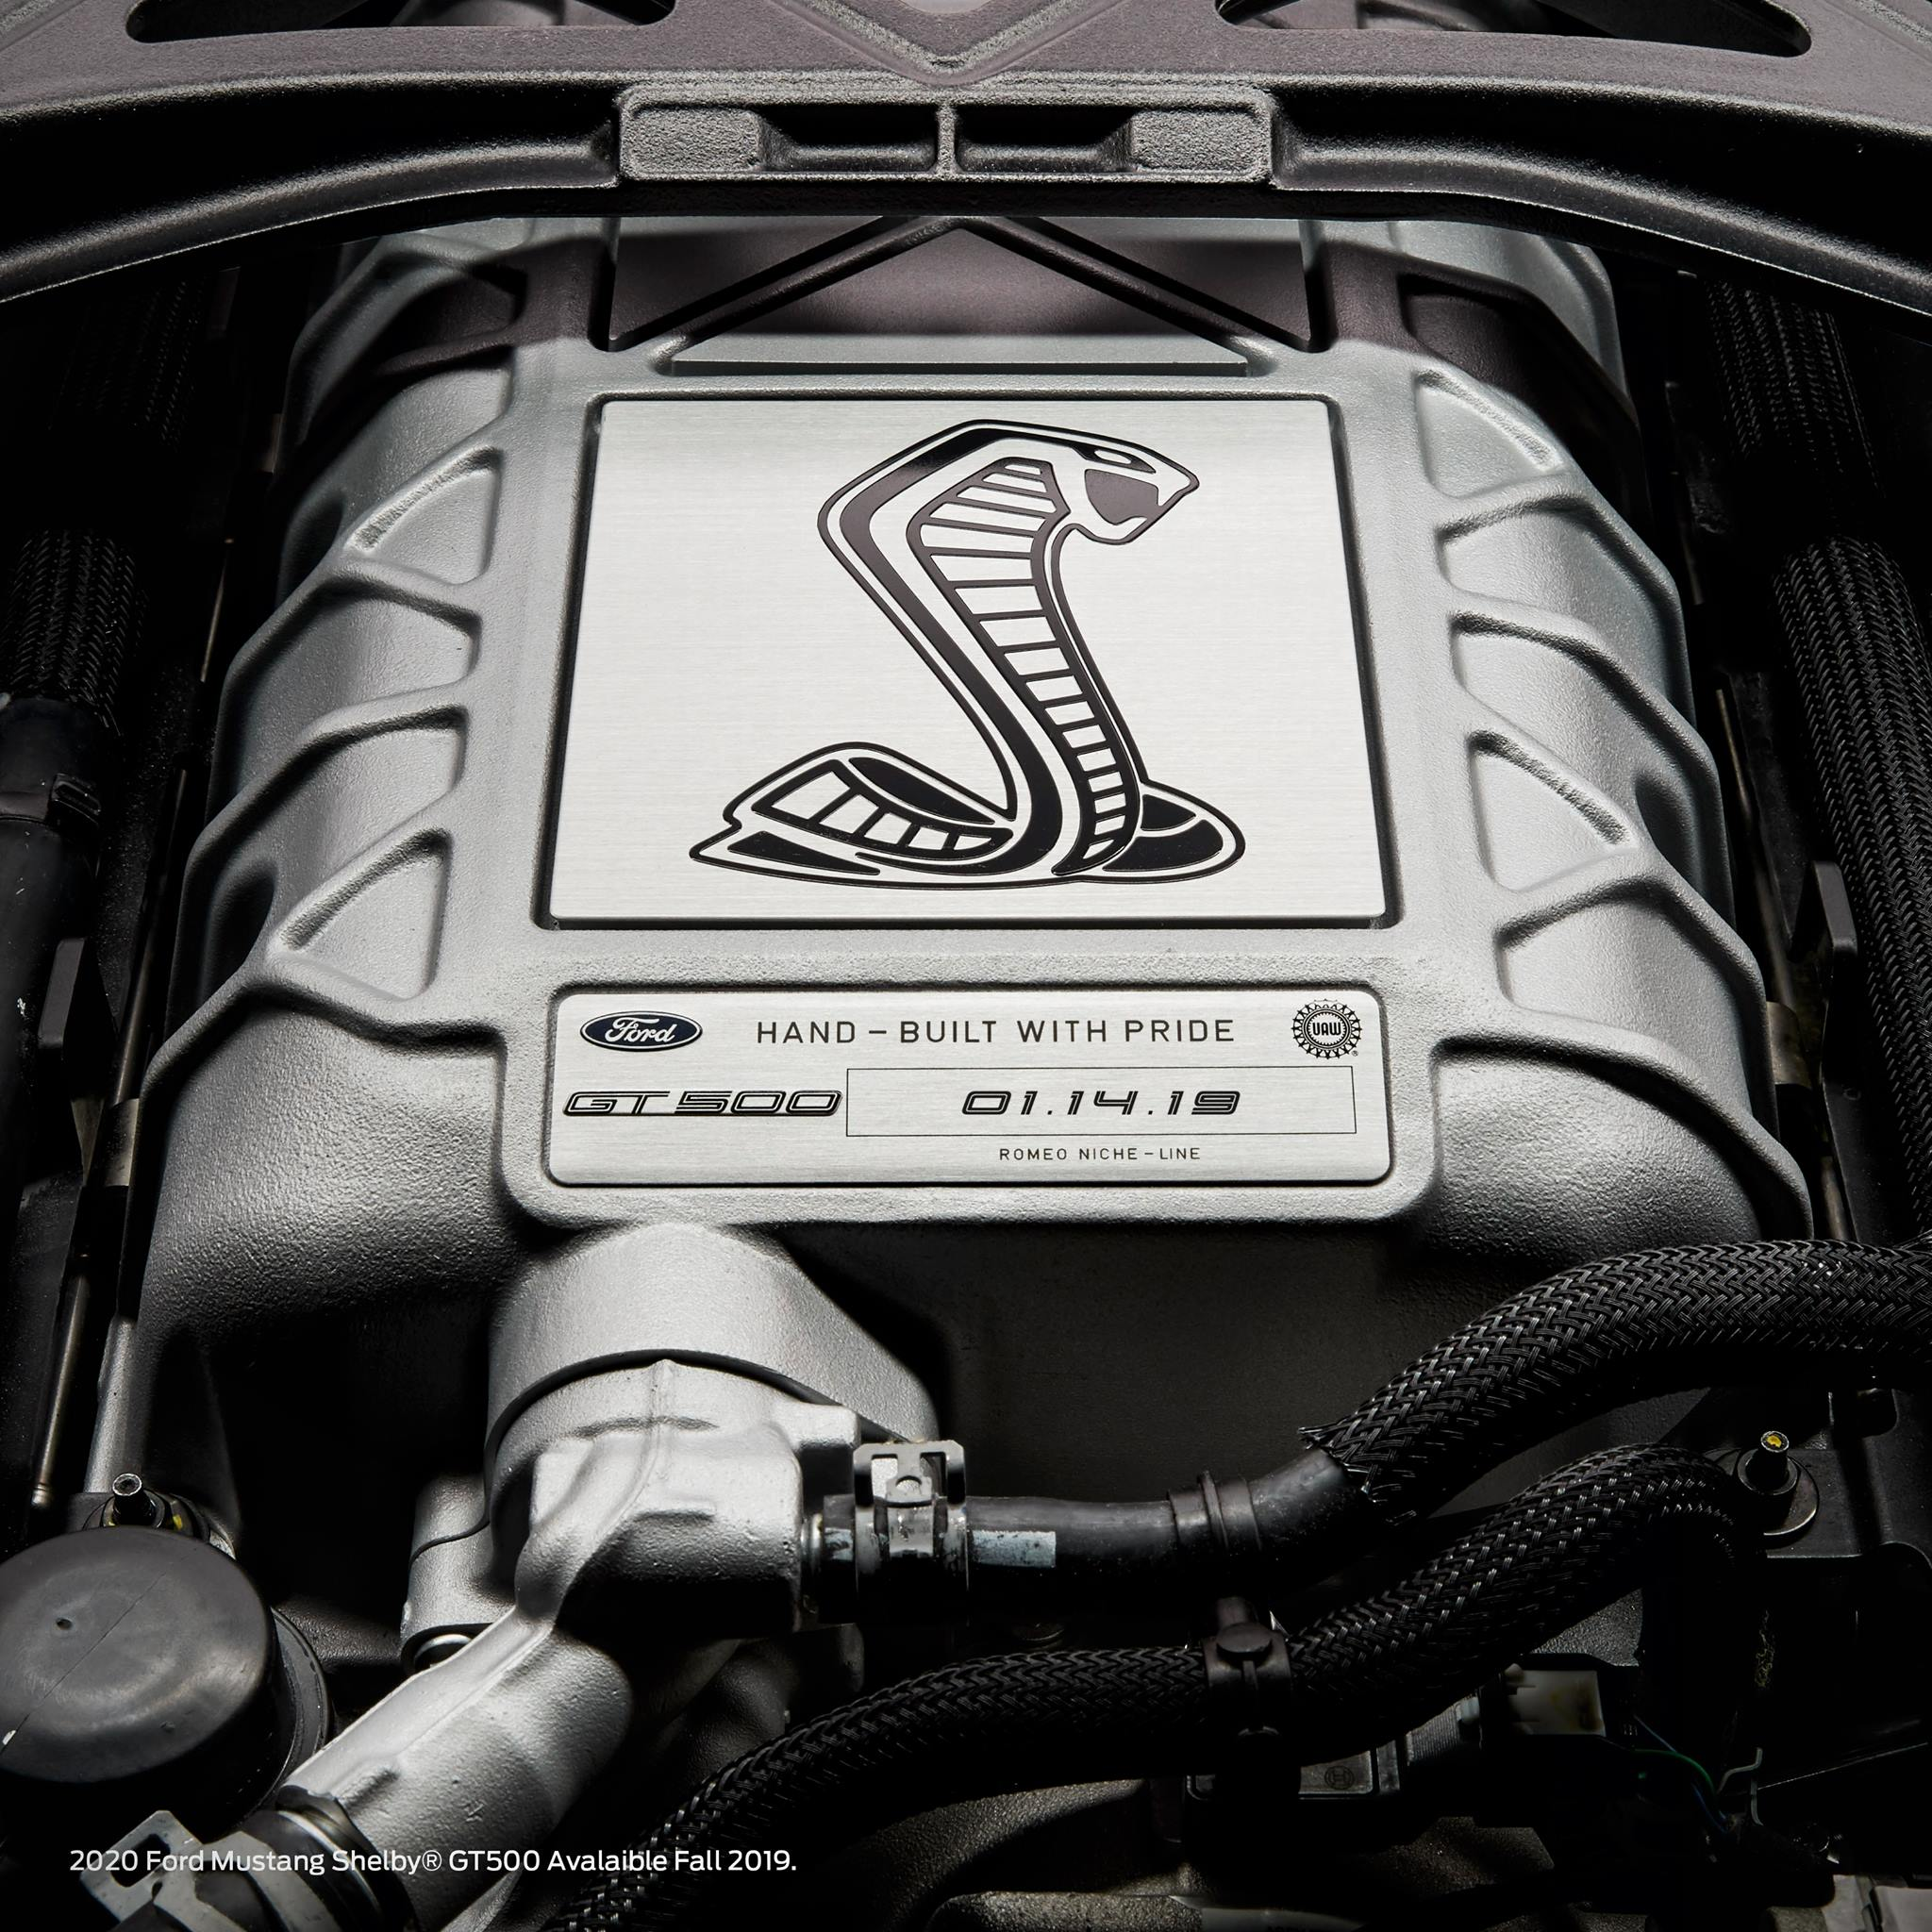 Shelby GT500 engine supercharger